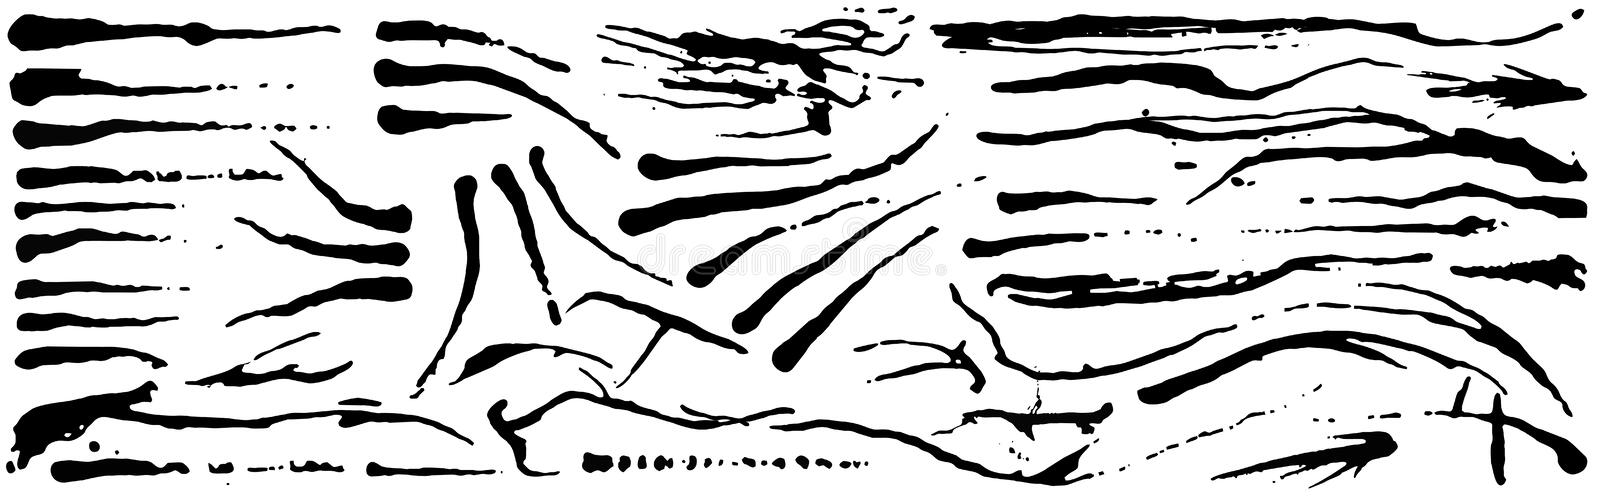 Grunge ink brush strokes. Black artistic paint, hand drawn. Dry brush stroke elements collection isolated on white background. stock illustration